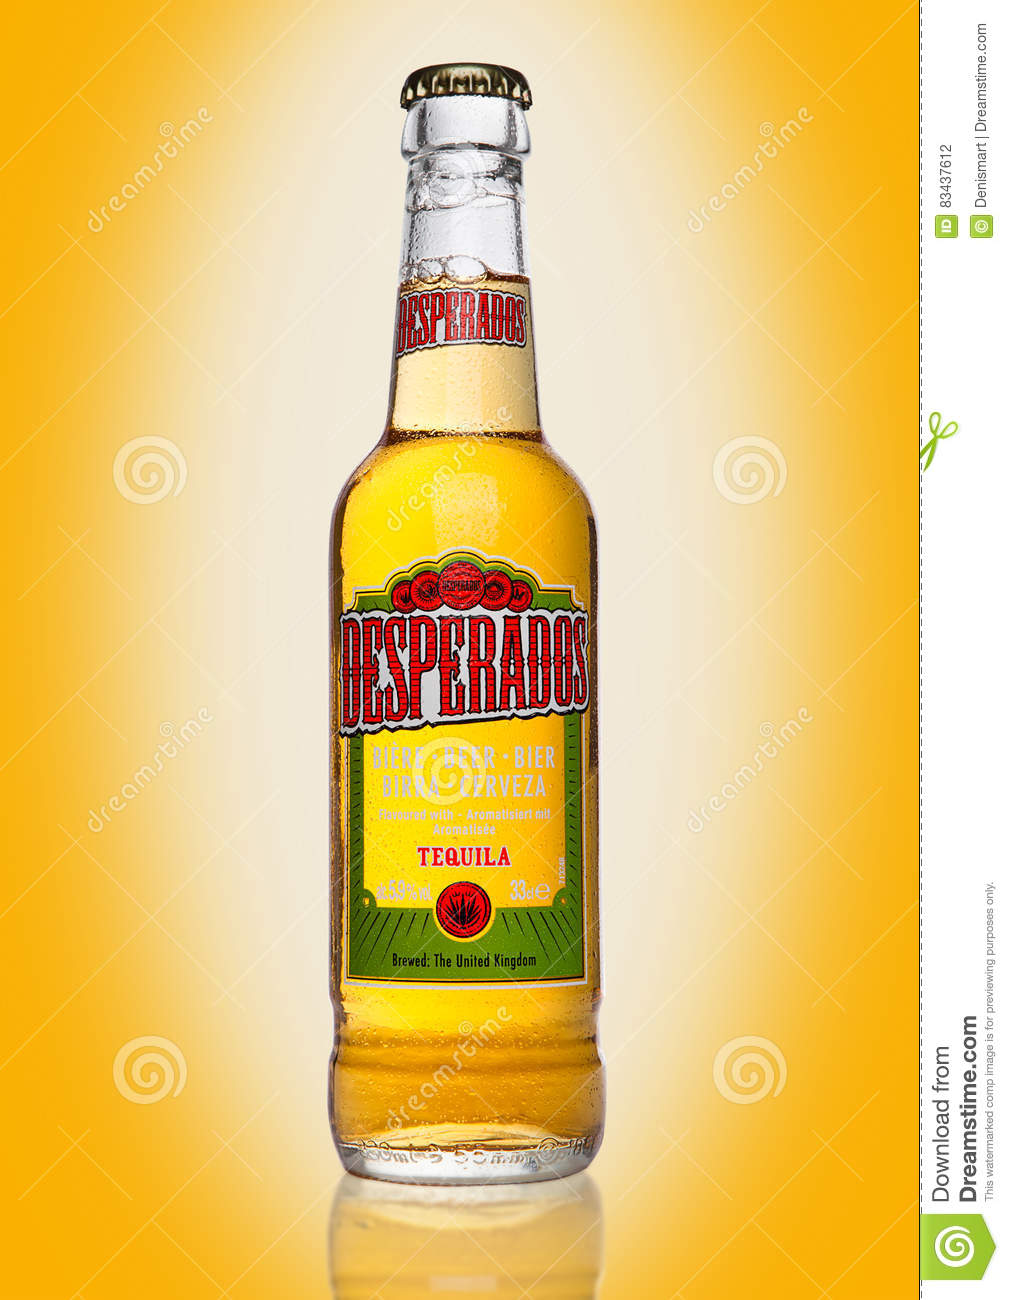 London Uk January 02 2017 Bottle Of Desperados Beer On Yellow Background Lager Flavored With Tequila Is A Popular Beer Produ Editorial Photography Image Of Bottle Isolated 83437612